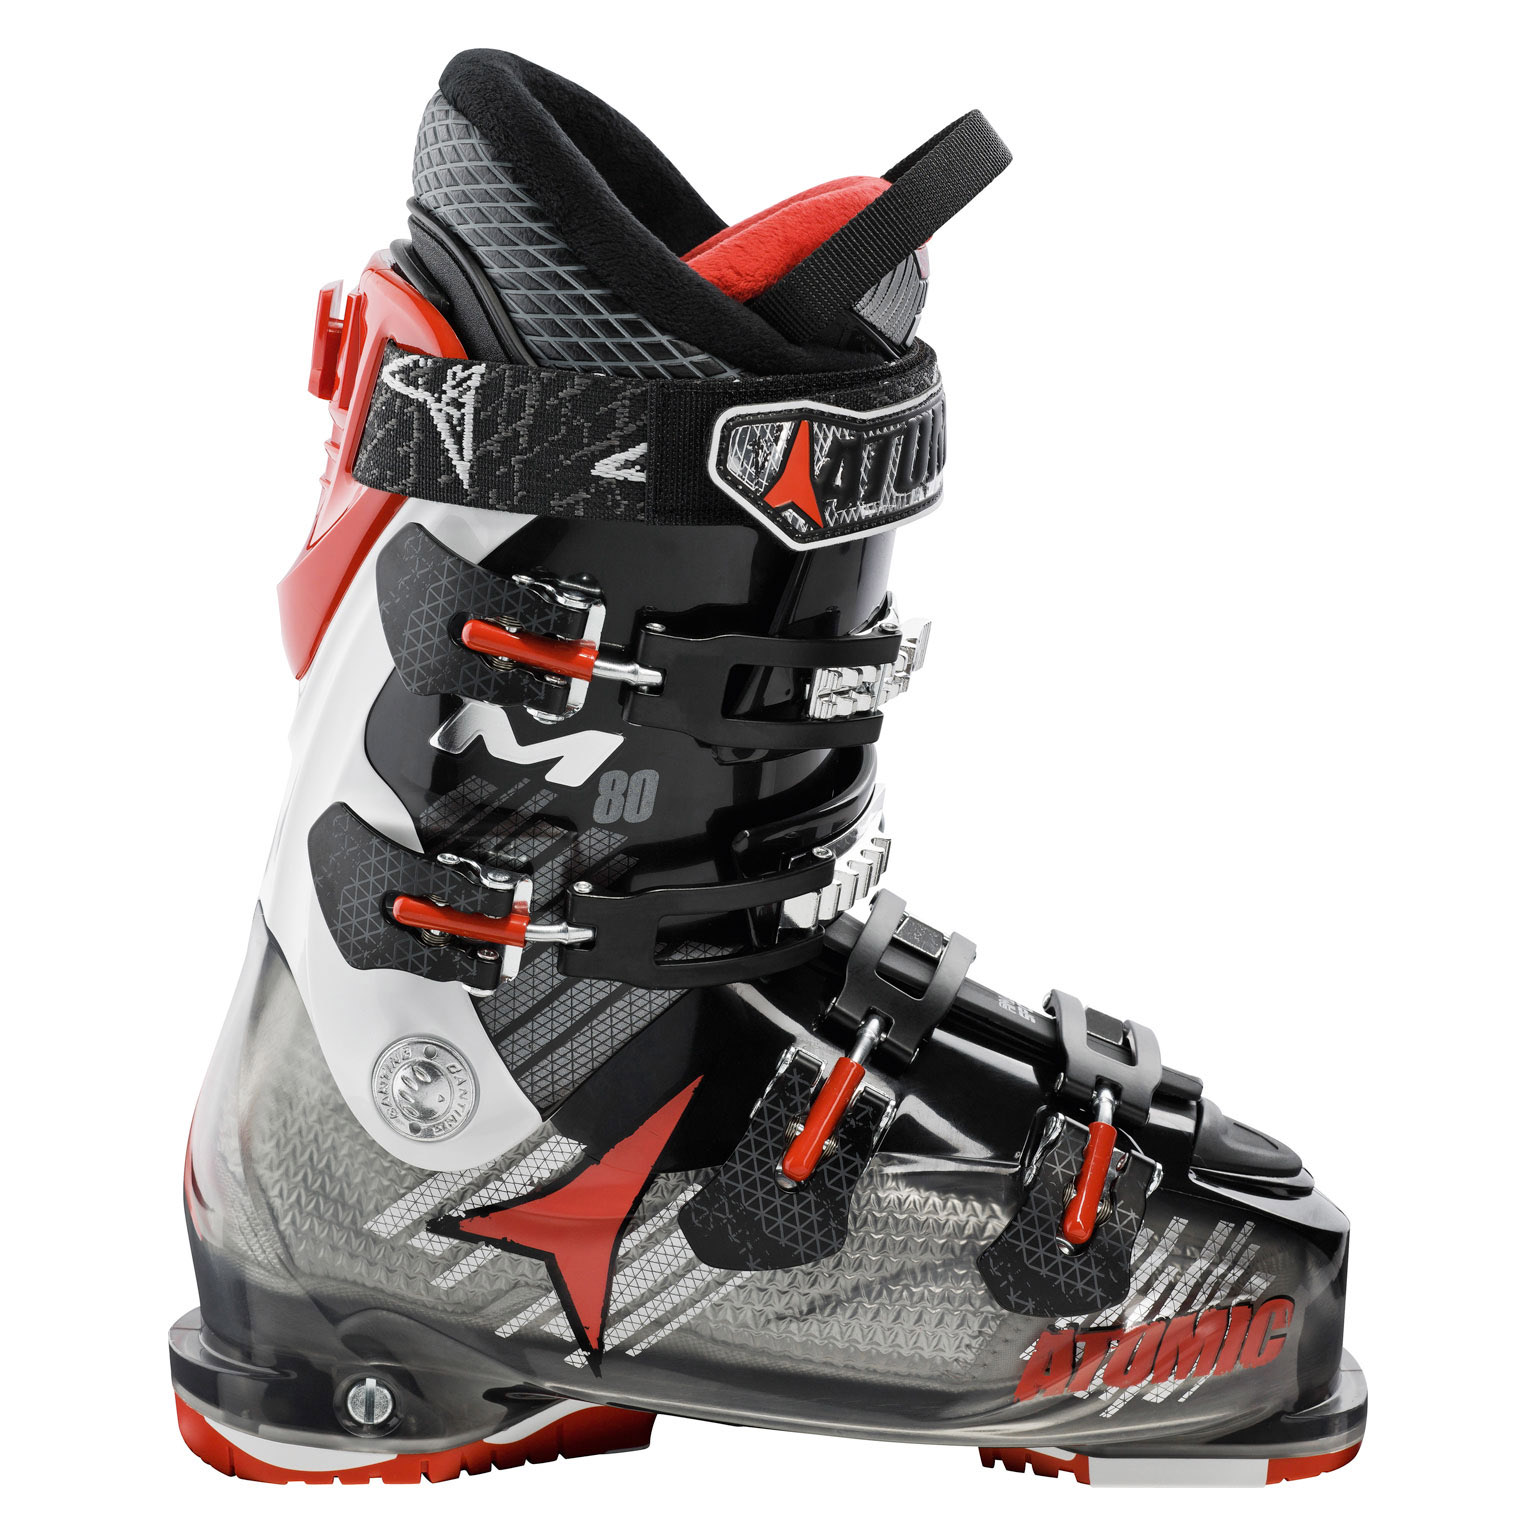 w performance mens all nordica speedmachine high boots skis auto ski ecospeedmachine comfortable mountain comforter q and official website